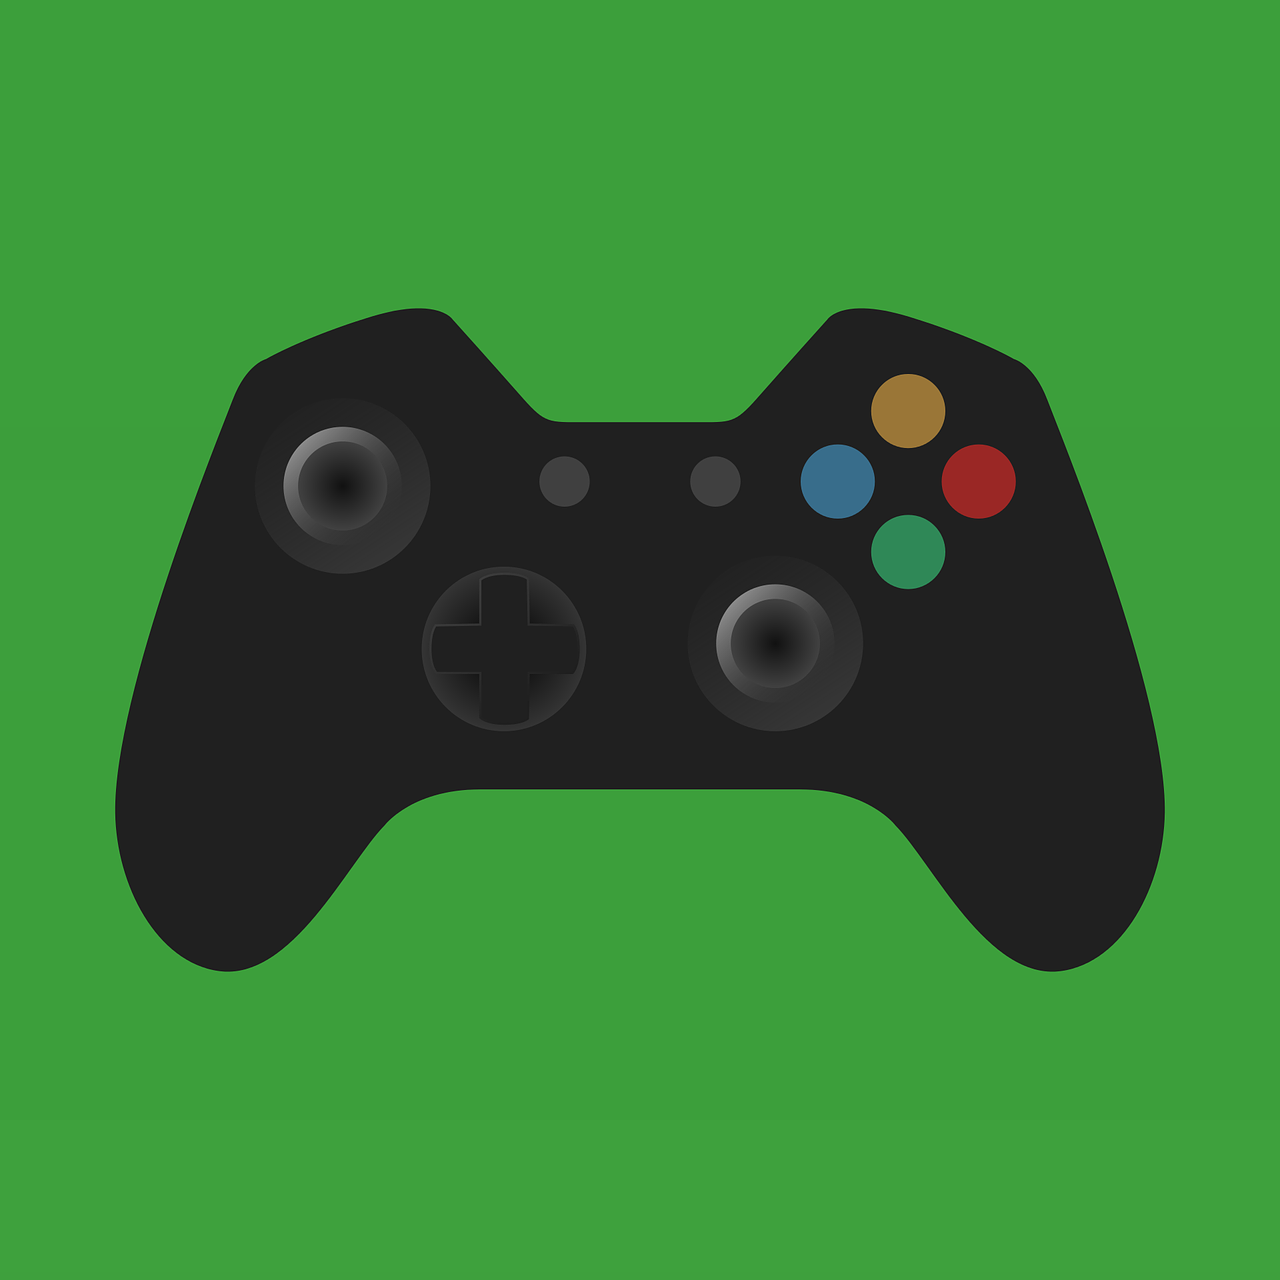 controller-1587567_1280-1280x1280.png